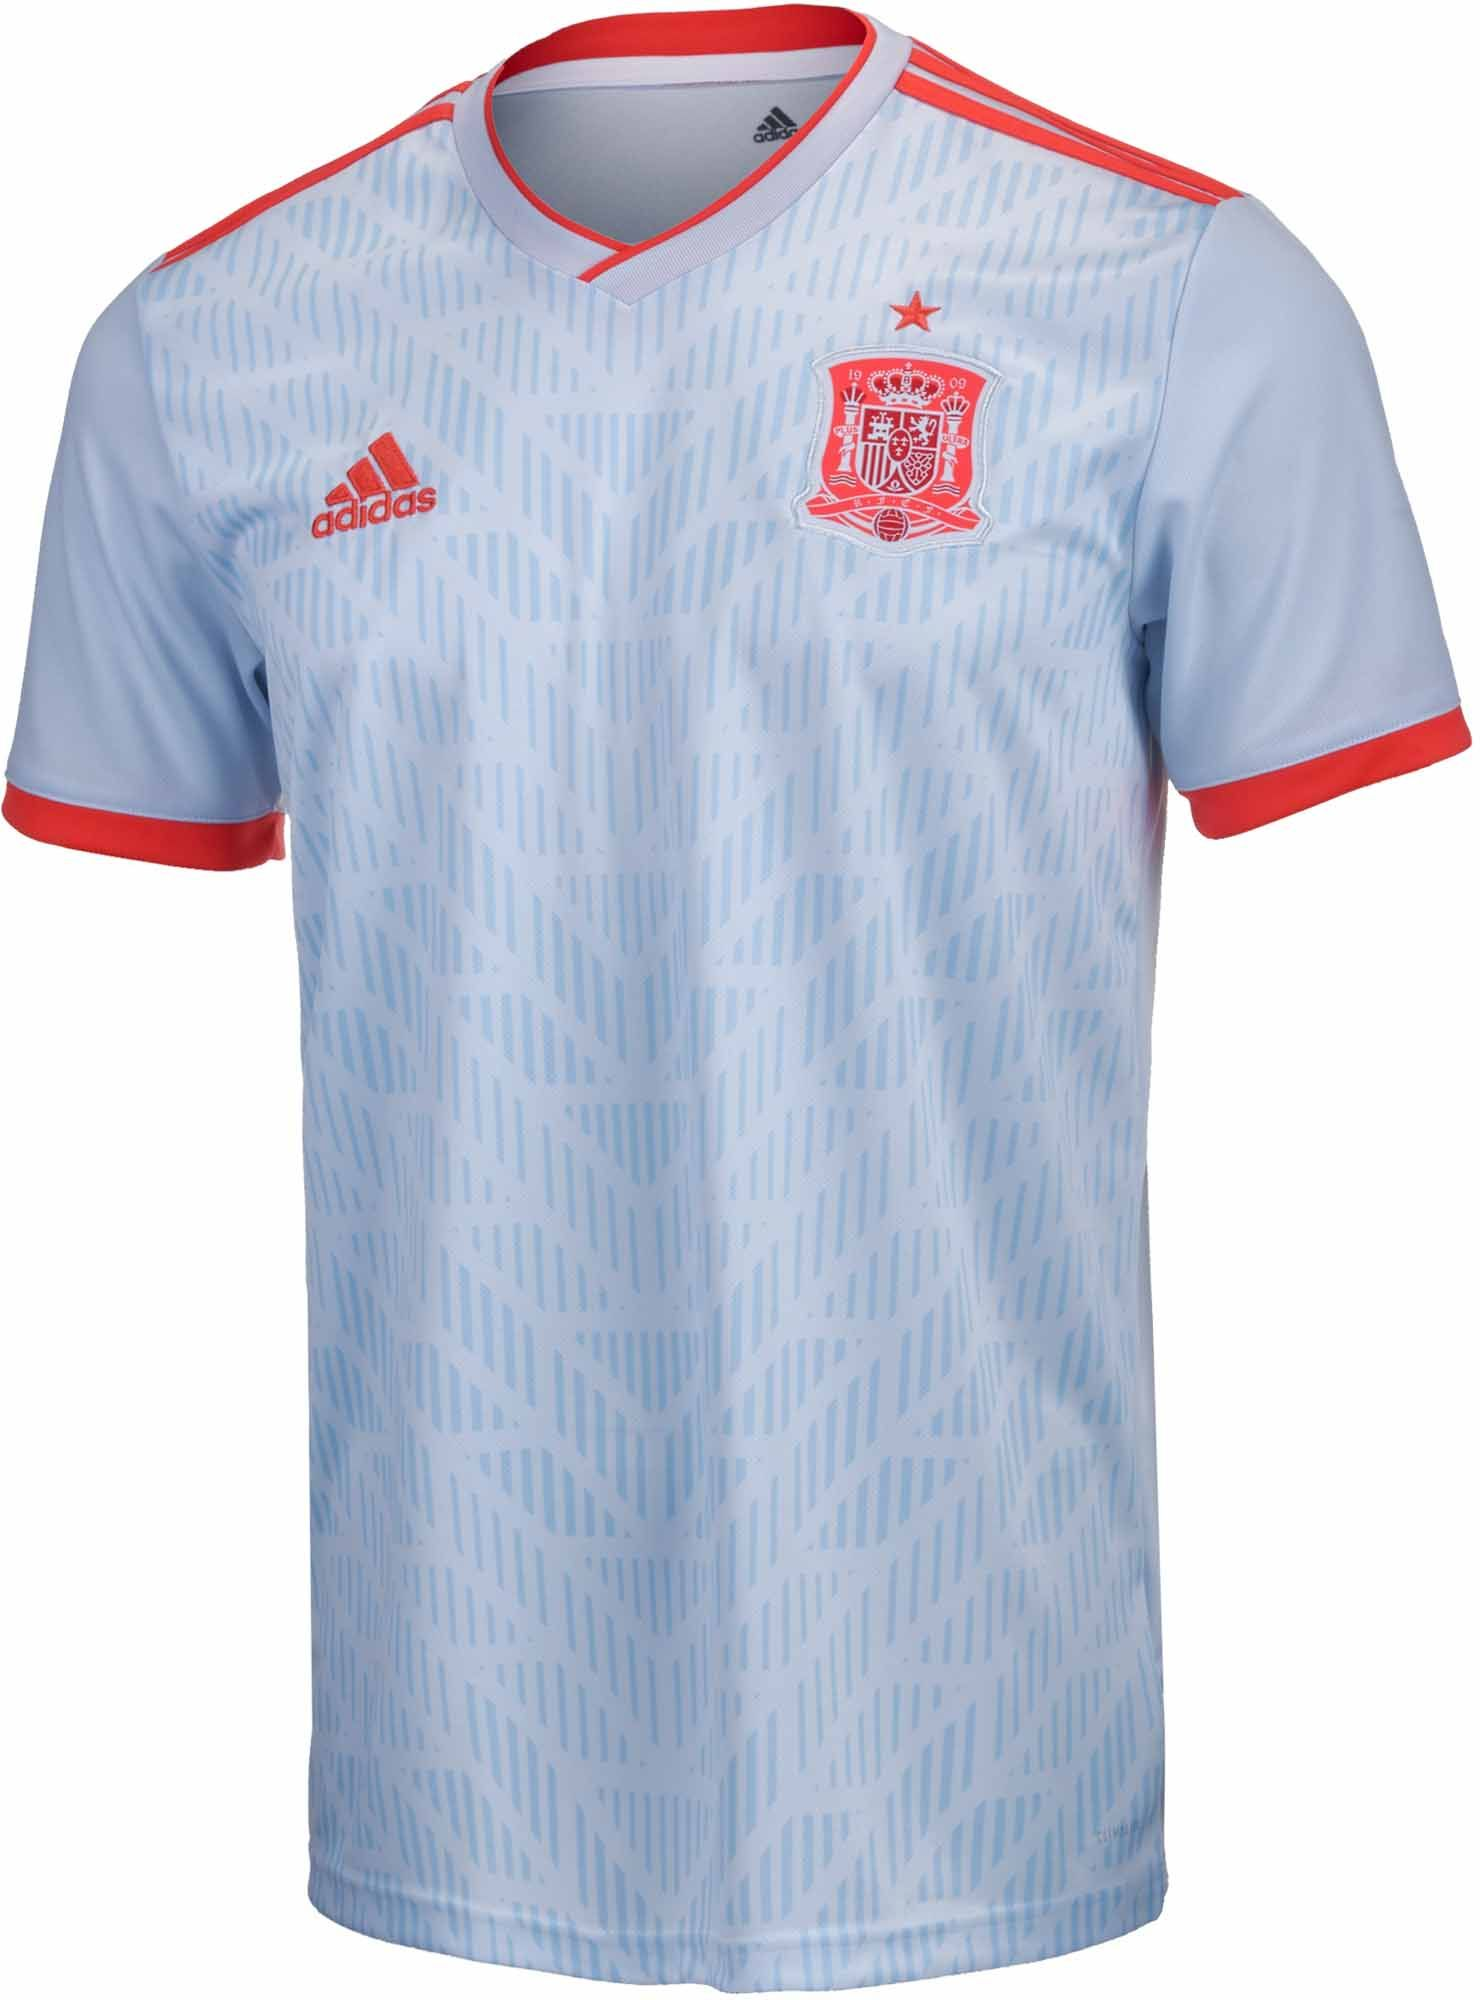 d5c583c2c56 Kids 2018 adidas Spain Away Jersey. Hot right now at SoccerPro.